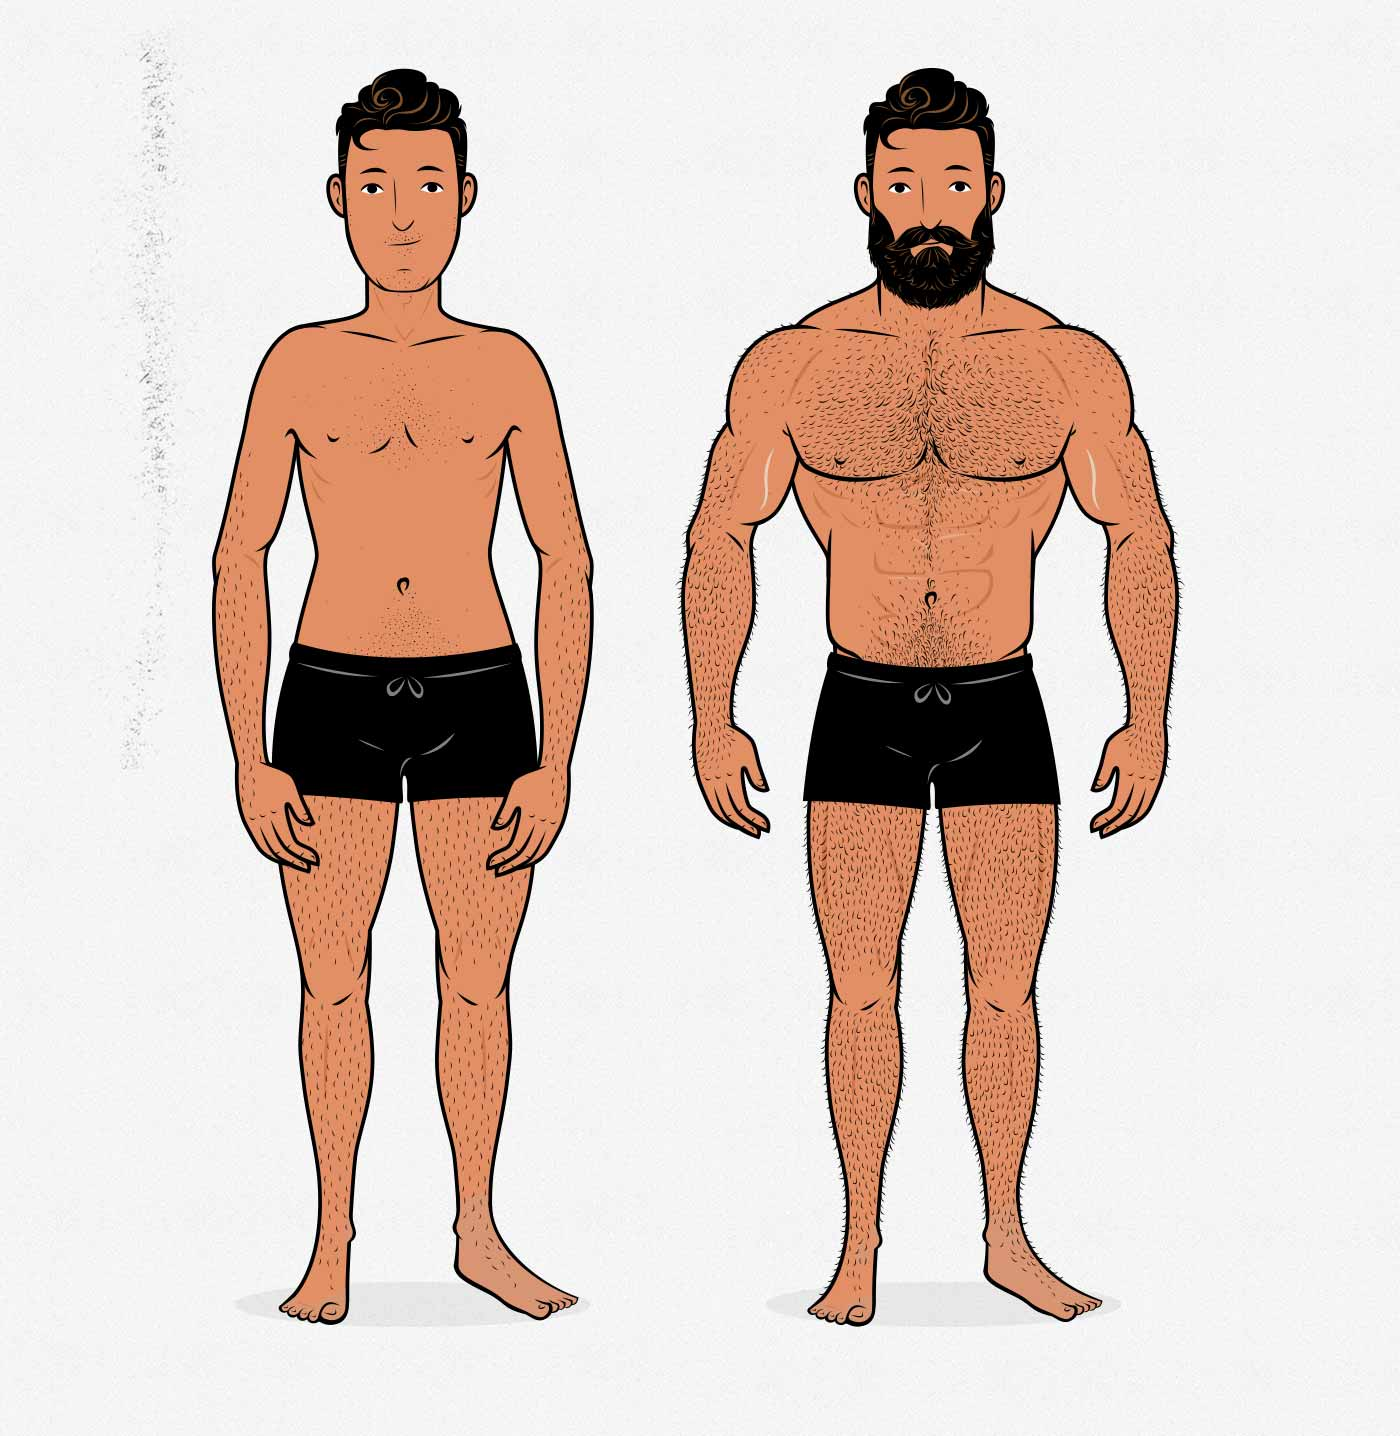 Illustration of a man with a feminine and a masculine body shape.